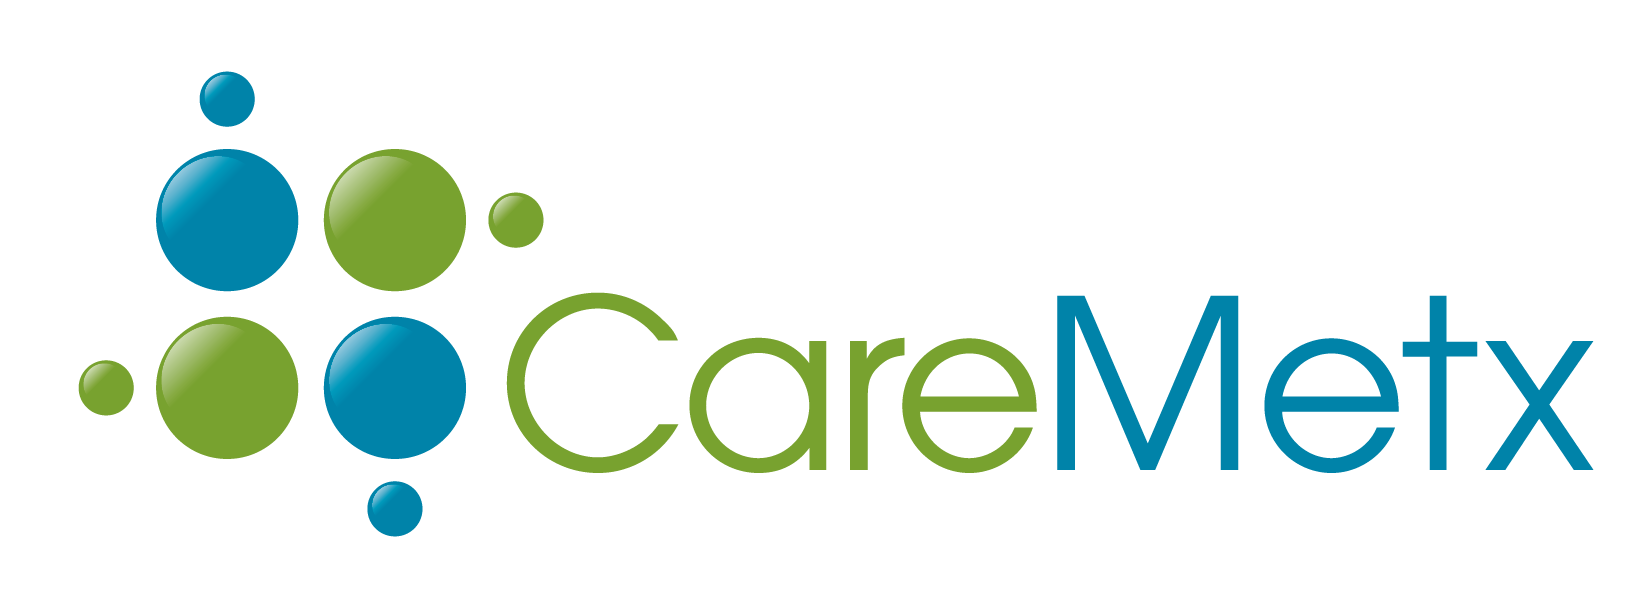 CareMetx_logo_2017 copy